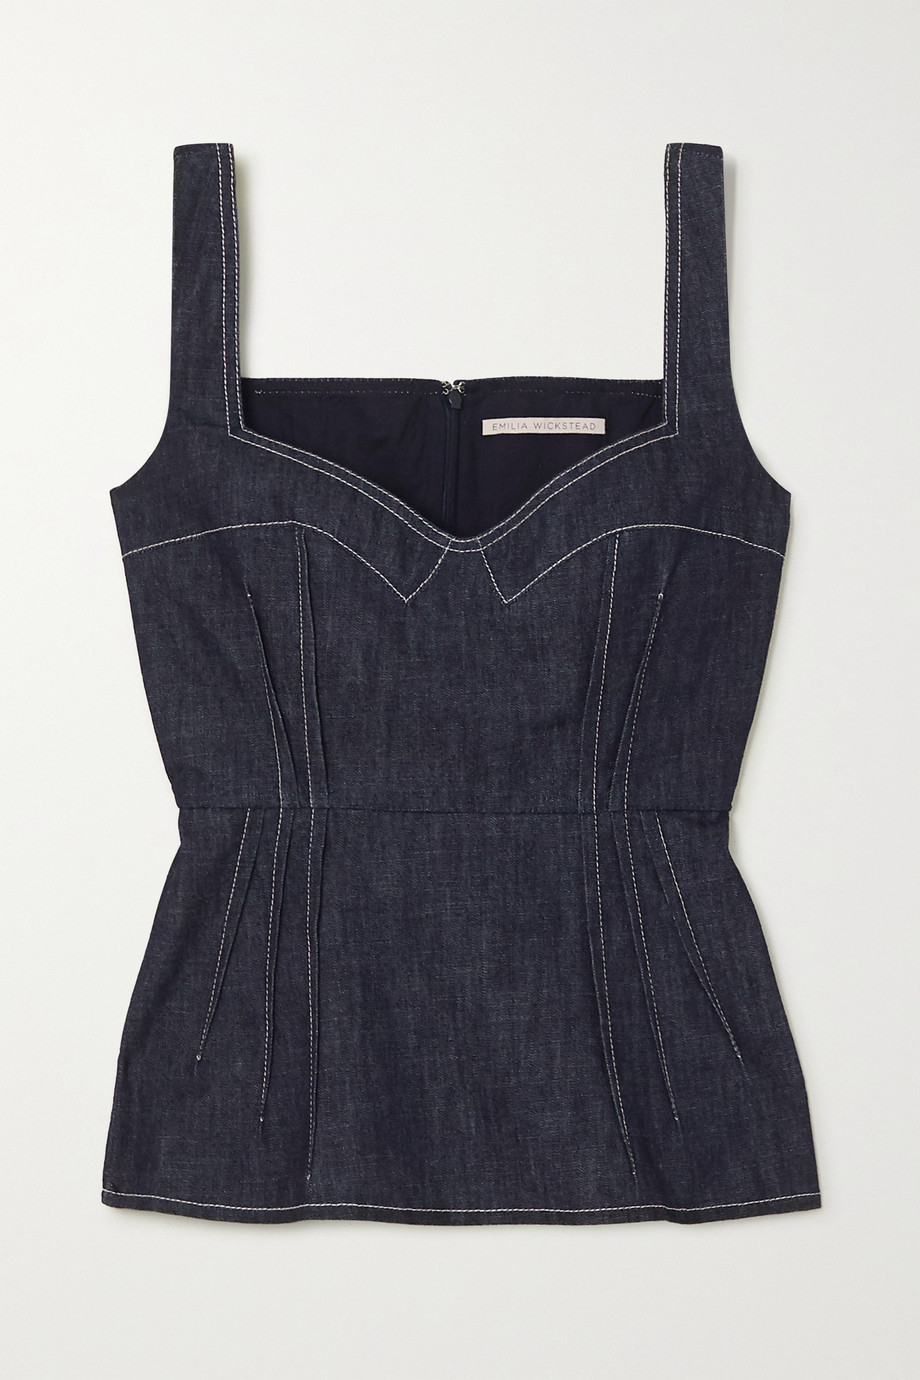 Emilia Wickstead Apple Bustier-Oberteil aus Denim